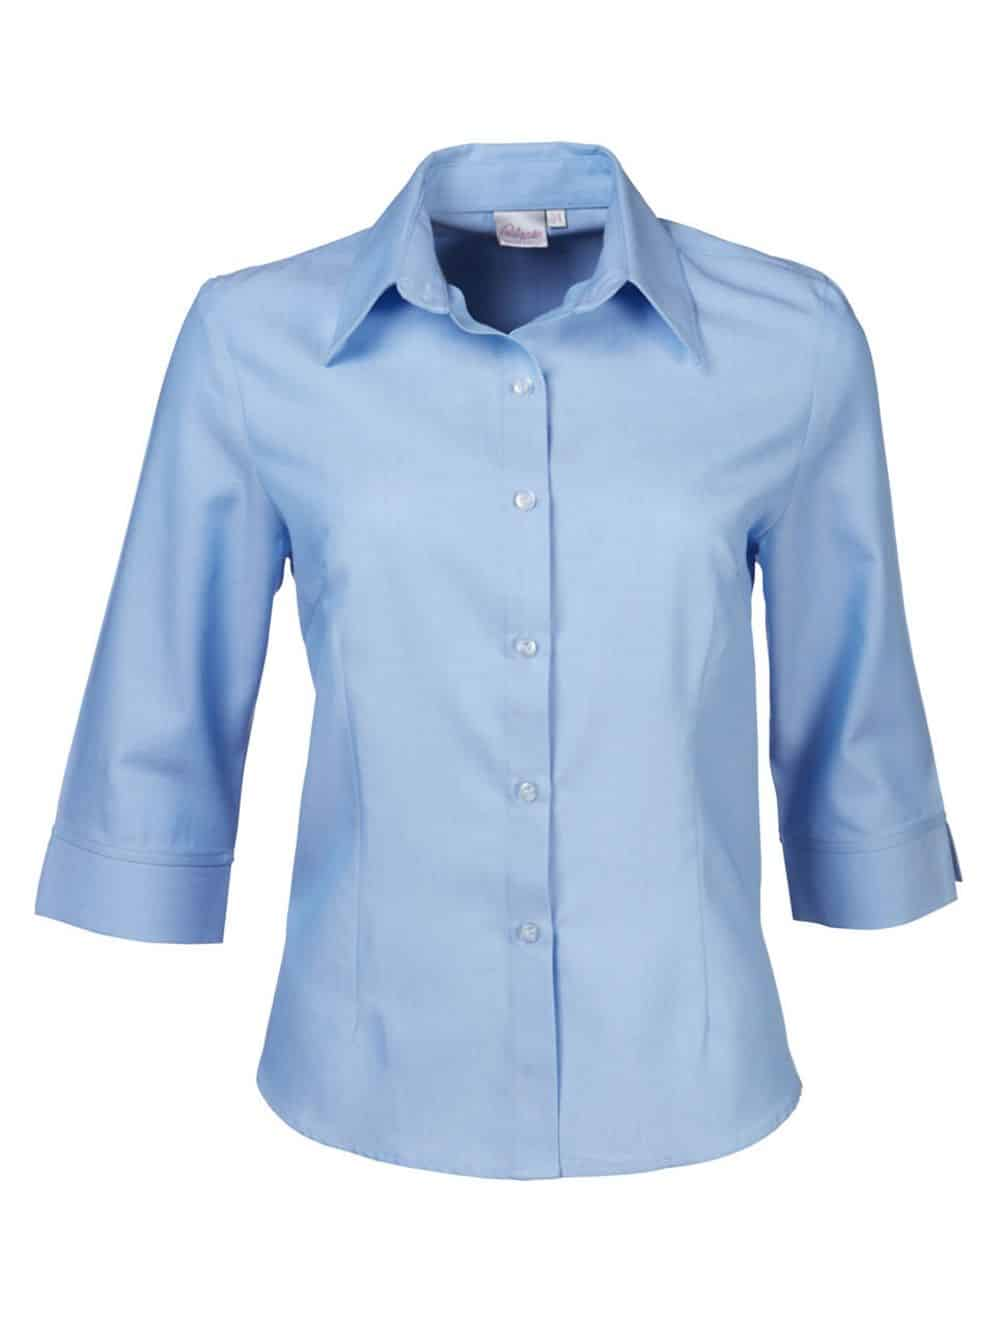 Blouse Wendy Short Sleeve Pin Point Oxford Lounge Shirts and Blouses